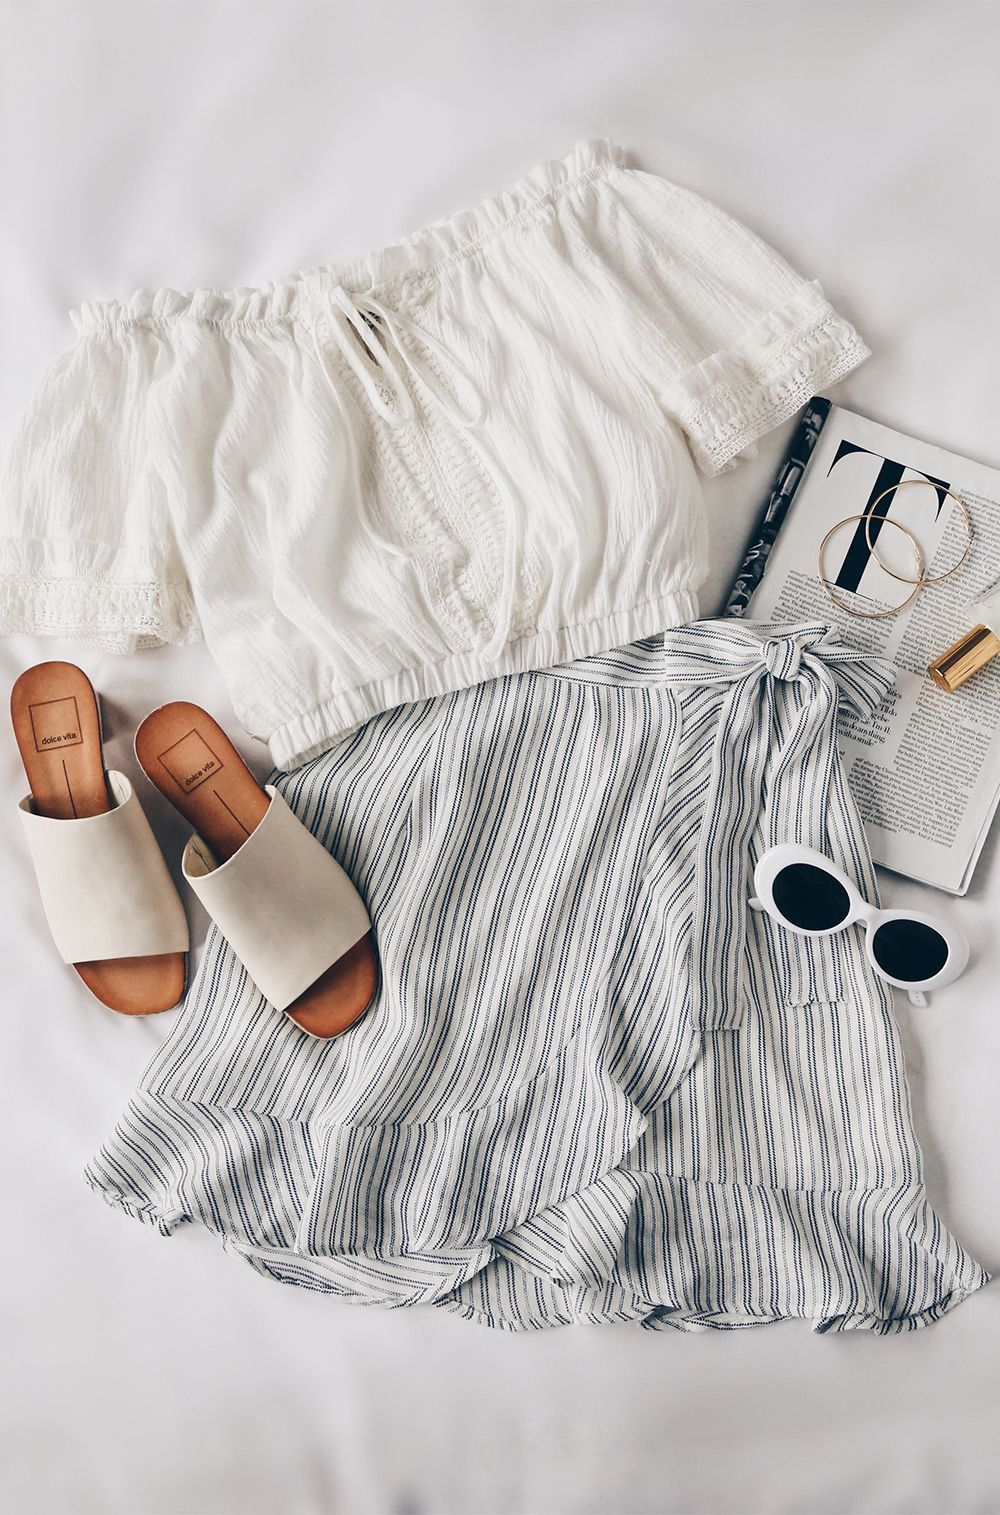 summer outfits for college girl 50+ best outfits - dresses for teens